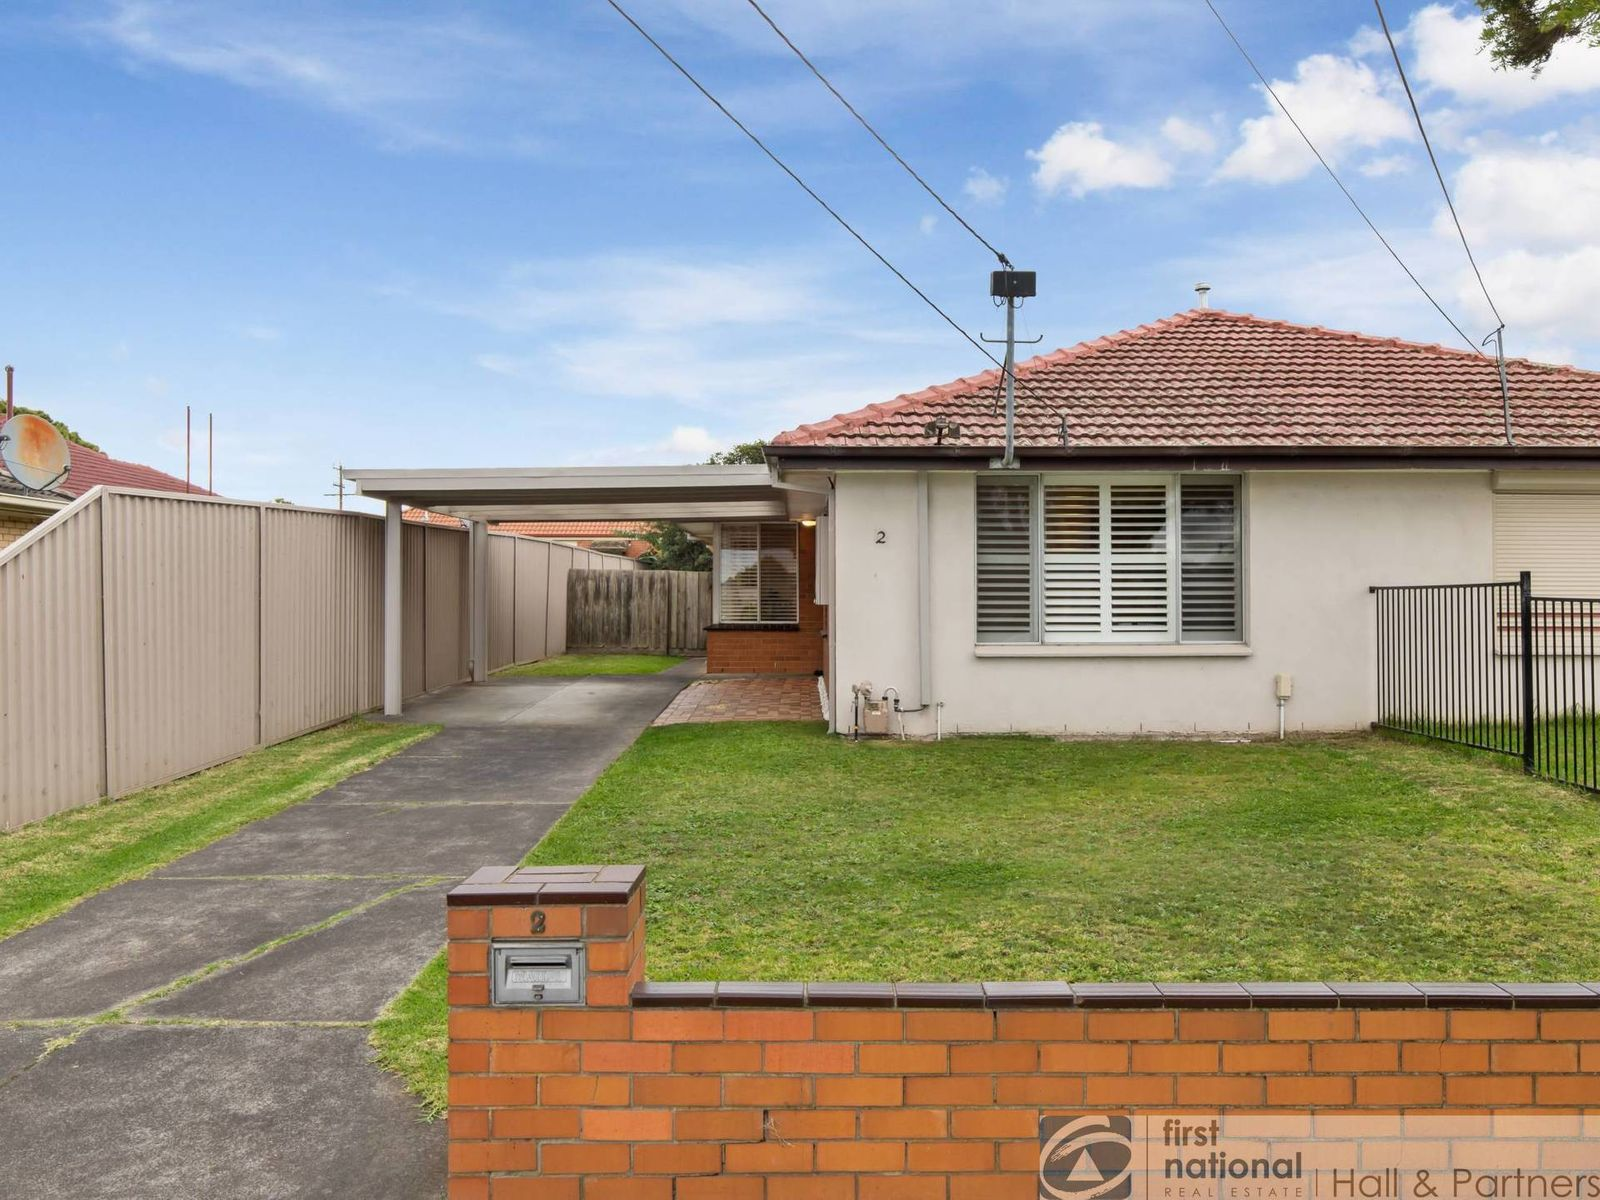 2 Jillian Street, Dandenong North, VIC 3175